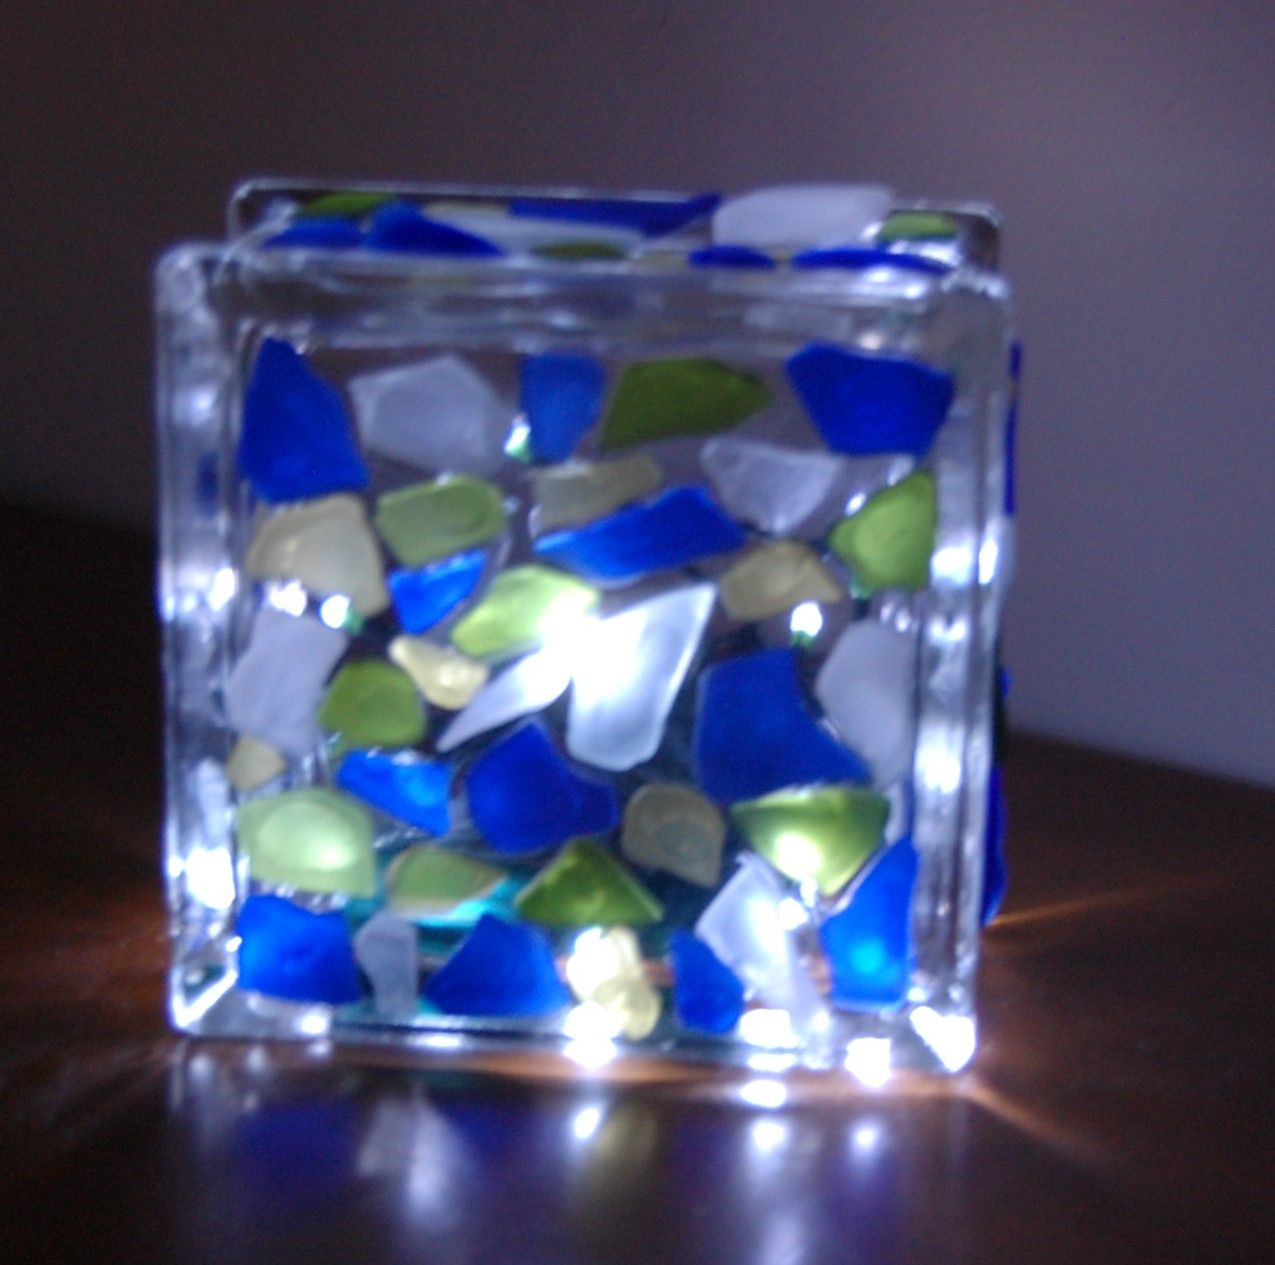 Glass blocks for crafts pre drilled - 1000 Images About Crafty Idea On Pinterest Left Over Pumpkins And Apothecary Jars